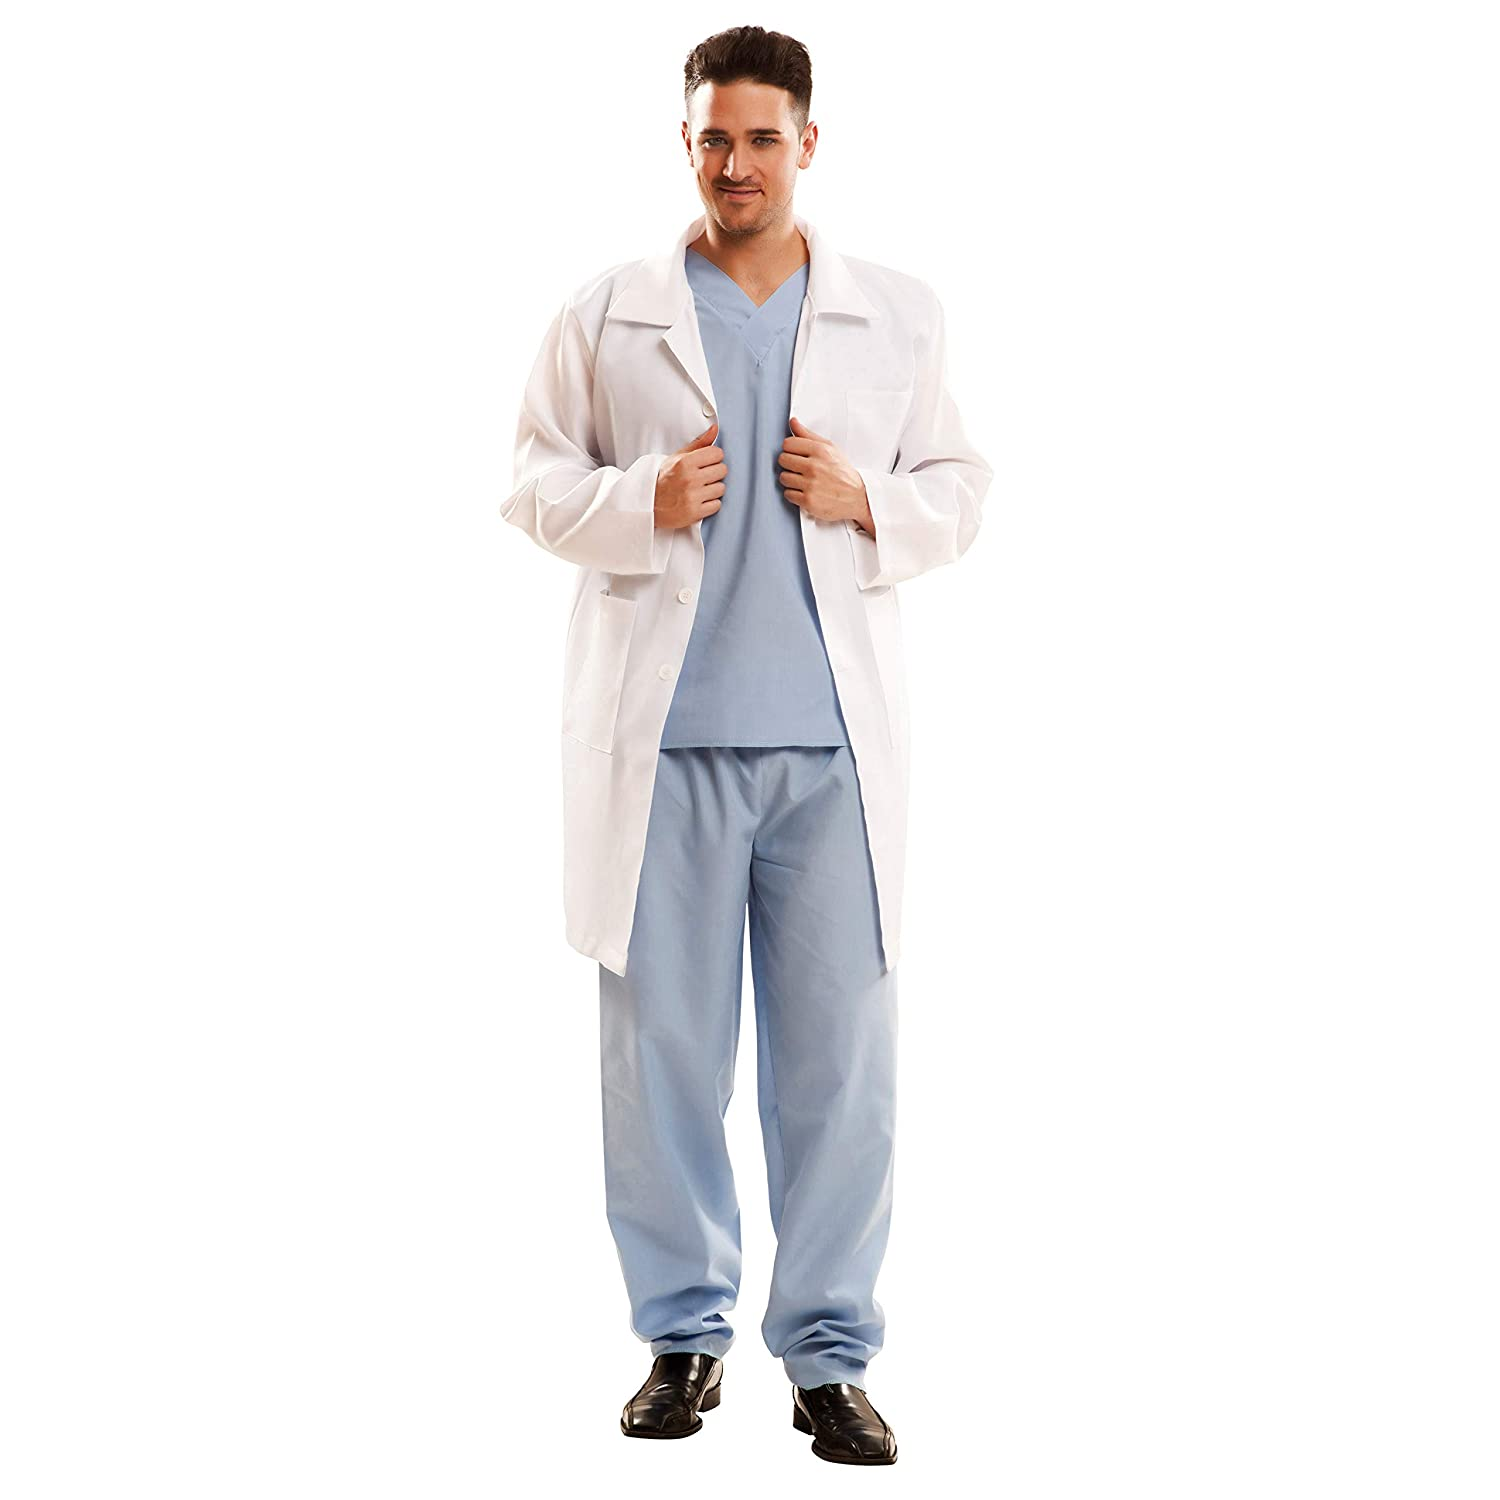 My Other Me Me - Disfraz Médico adulto, talla M-L (Viving Costumes ...